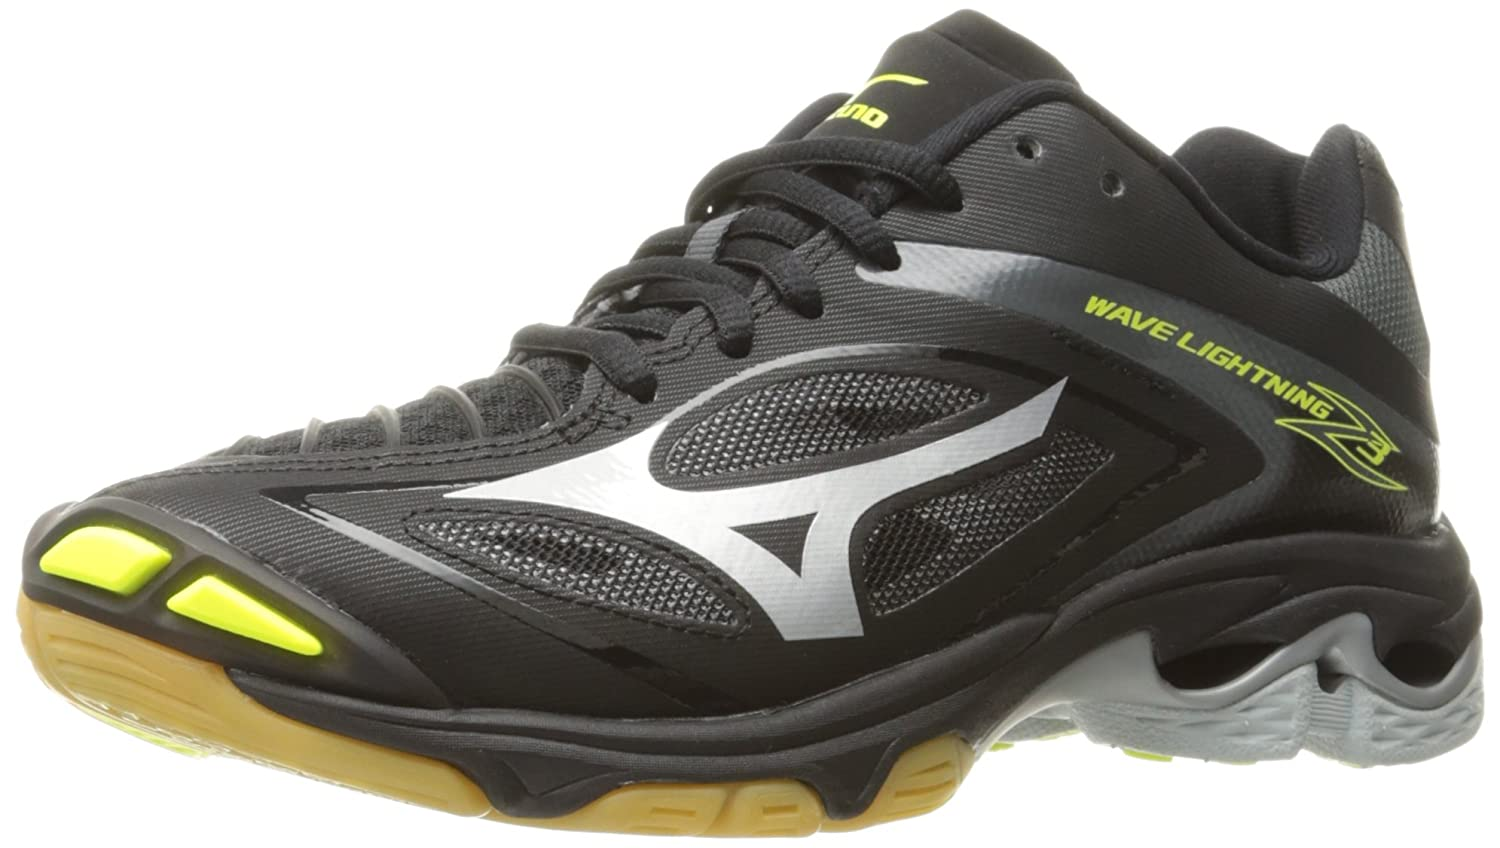 Mizuno Women's Wave Lightning Z3 Volleyball Shoe B01N1FO0VO 9.5 B(M) US|Black/Silver